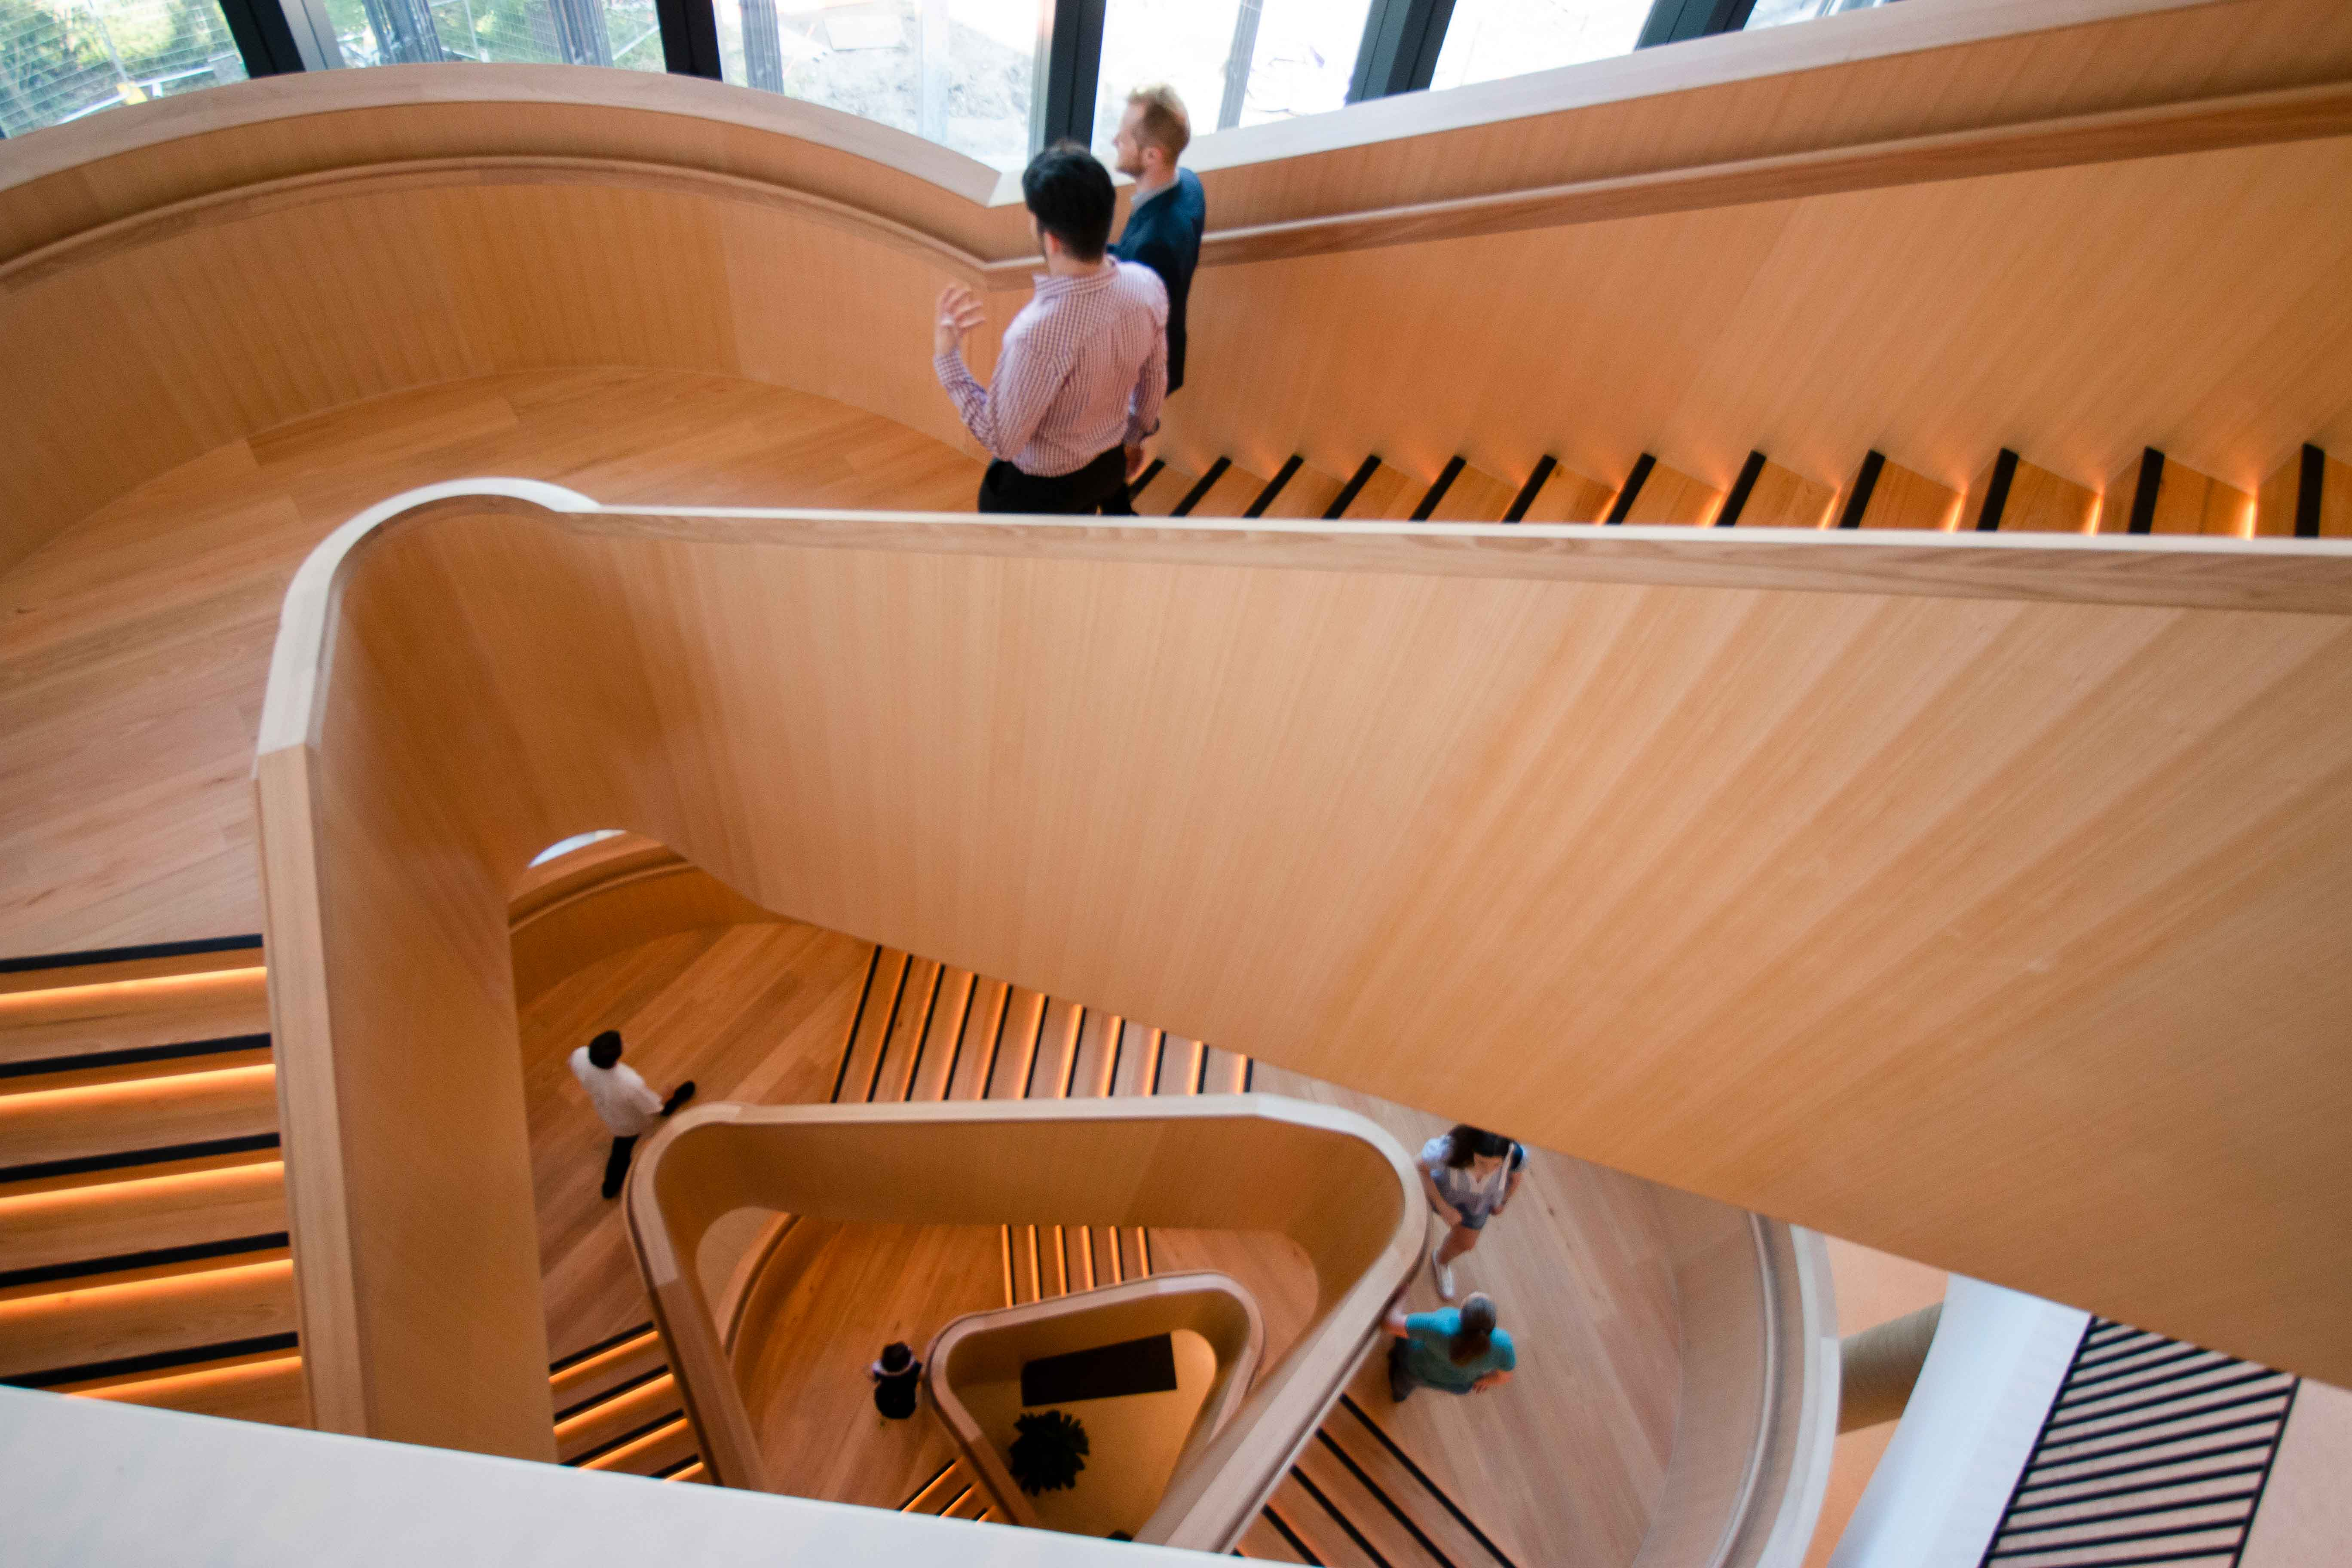 Wooden staircase demonstrating modern architectural design.